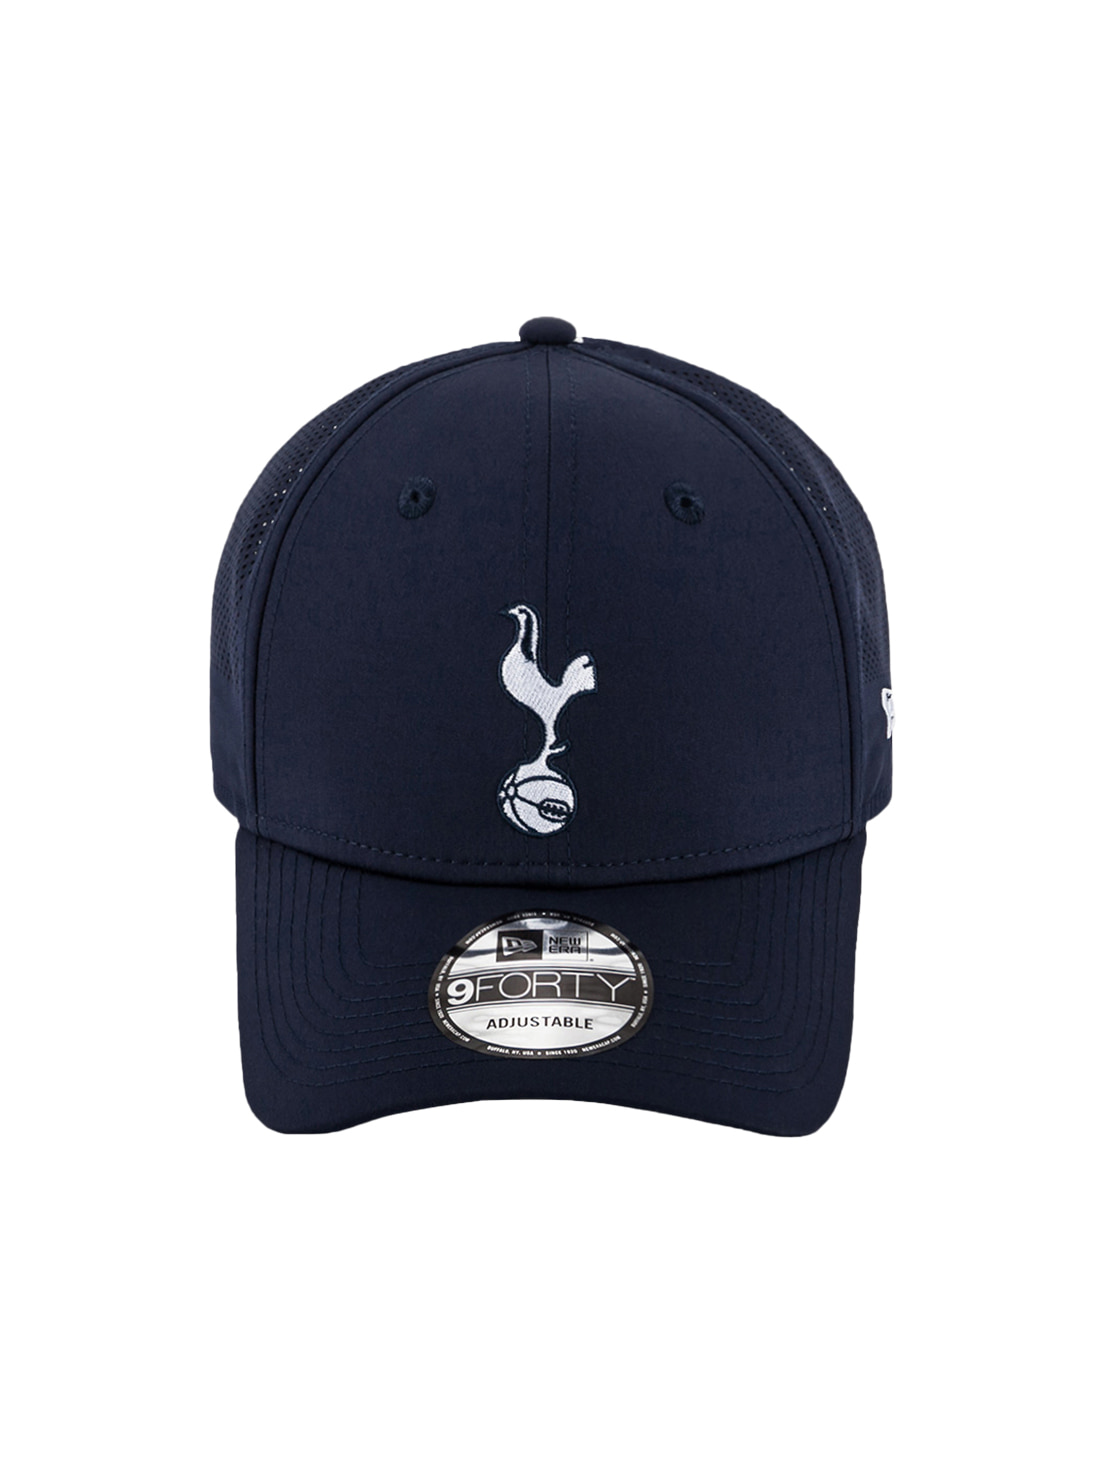 (Sold Out) TOTTENHAM PERFORATED MESH BALL CAP - NAVY